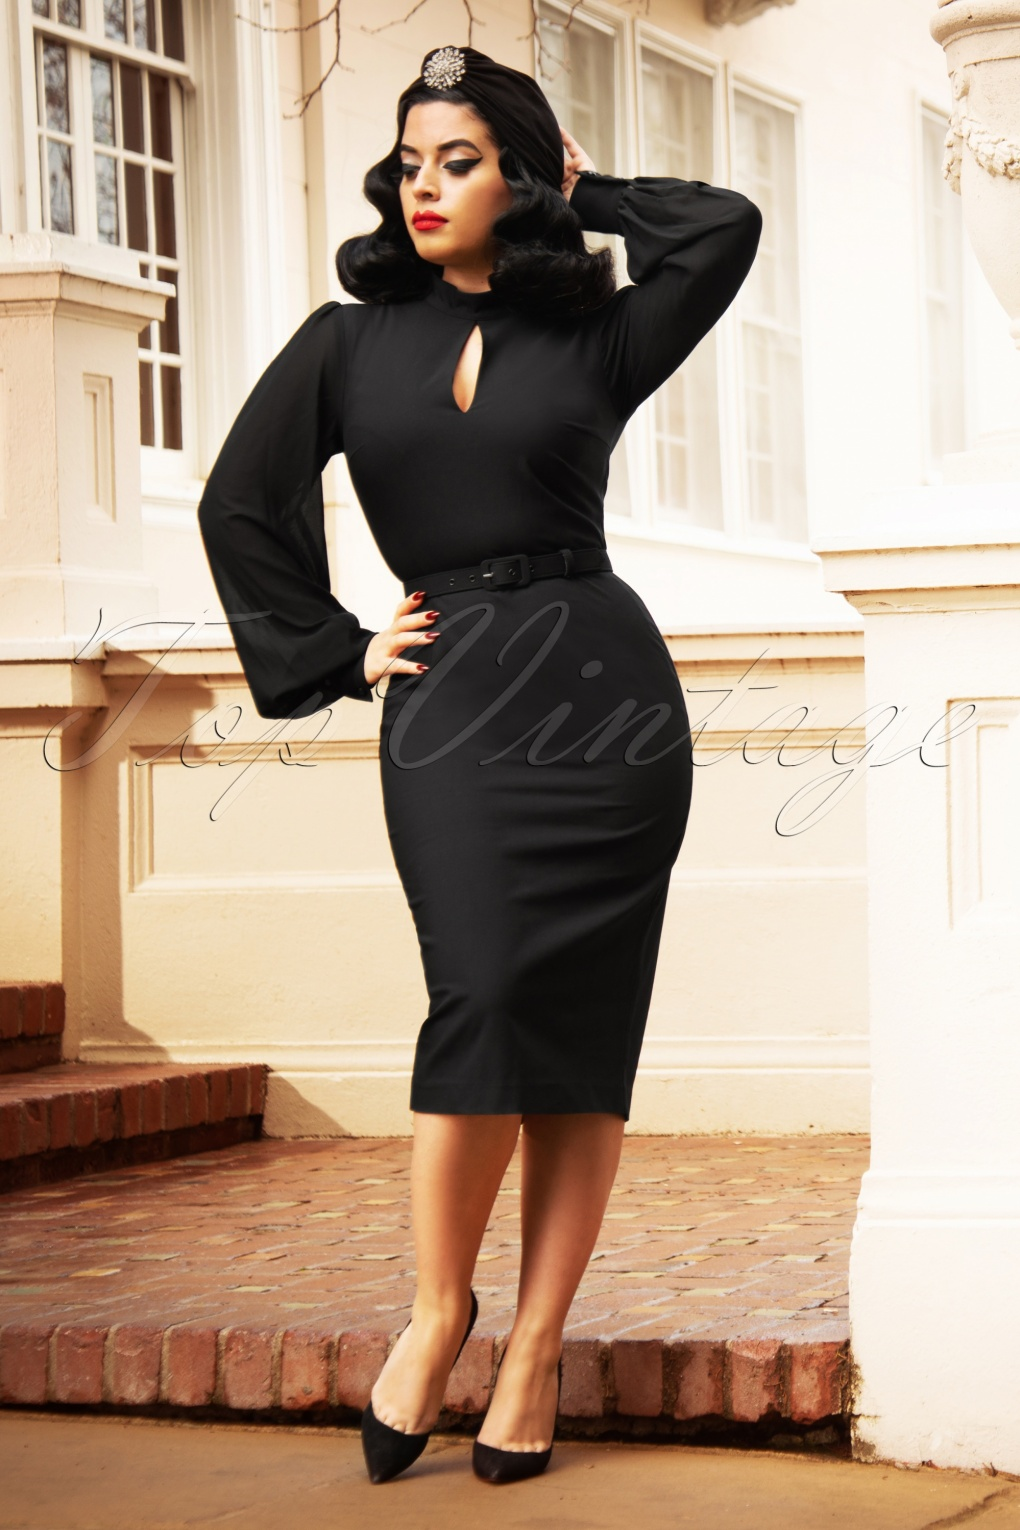 500 Vintage Style Dresses for Sale | Vintage Inspired Dresses The Gloria Pencil Dress in Black £37.16 AT vintagedancer.com